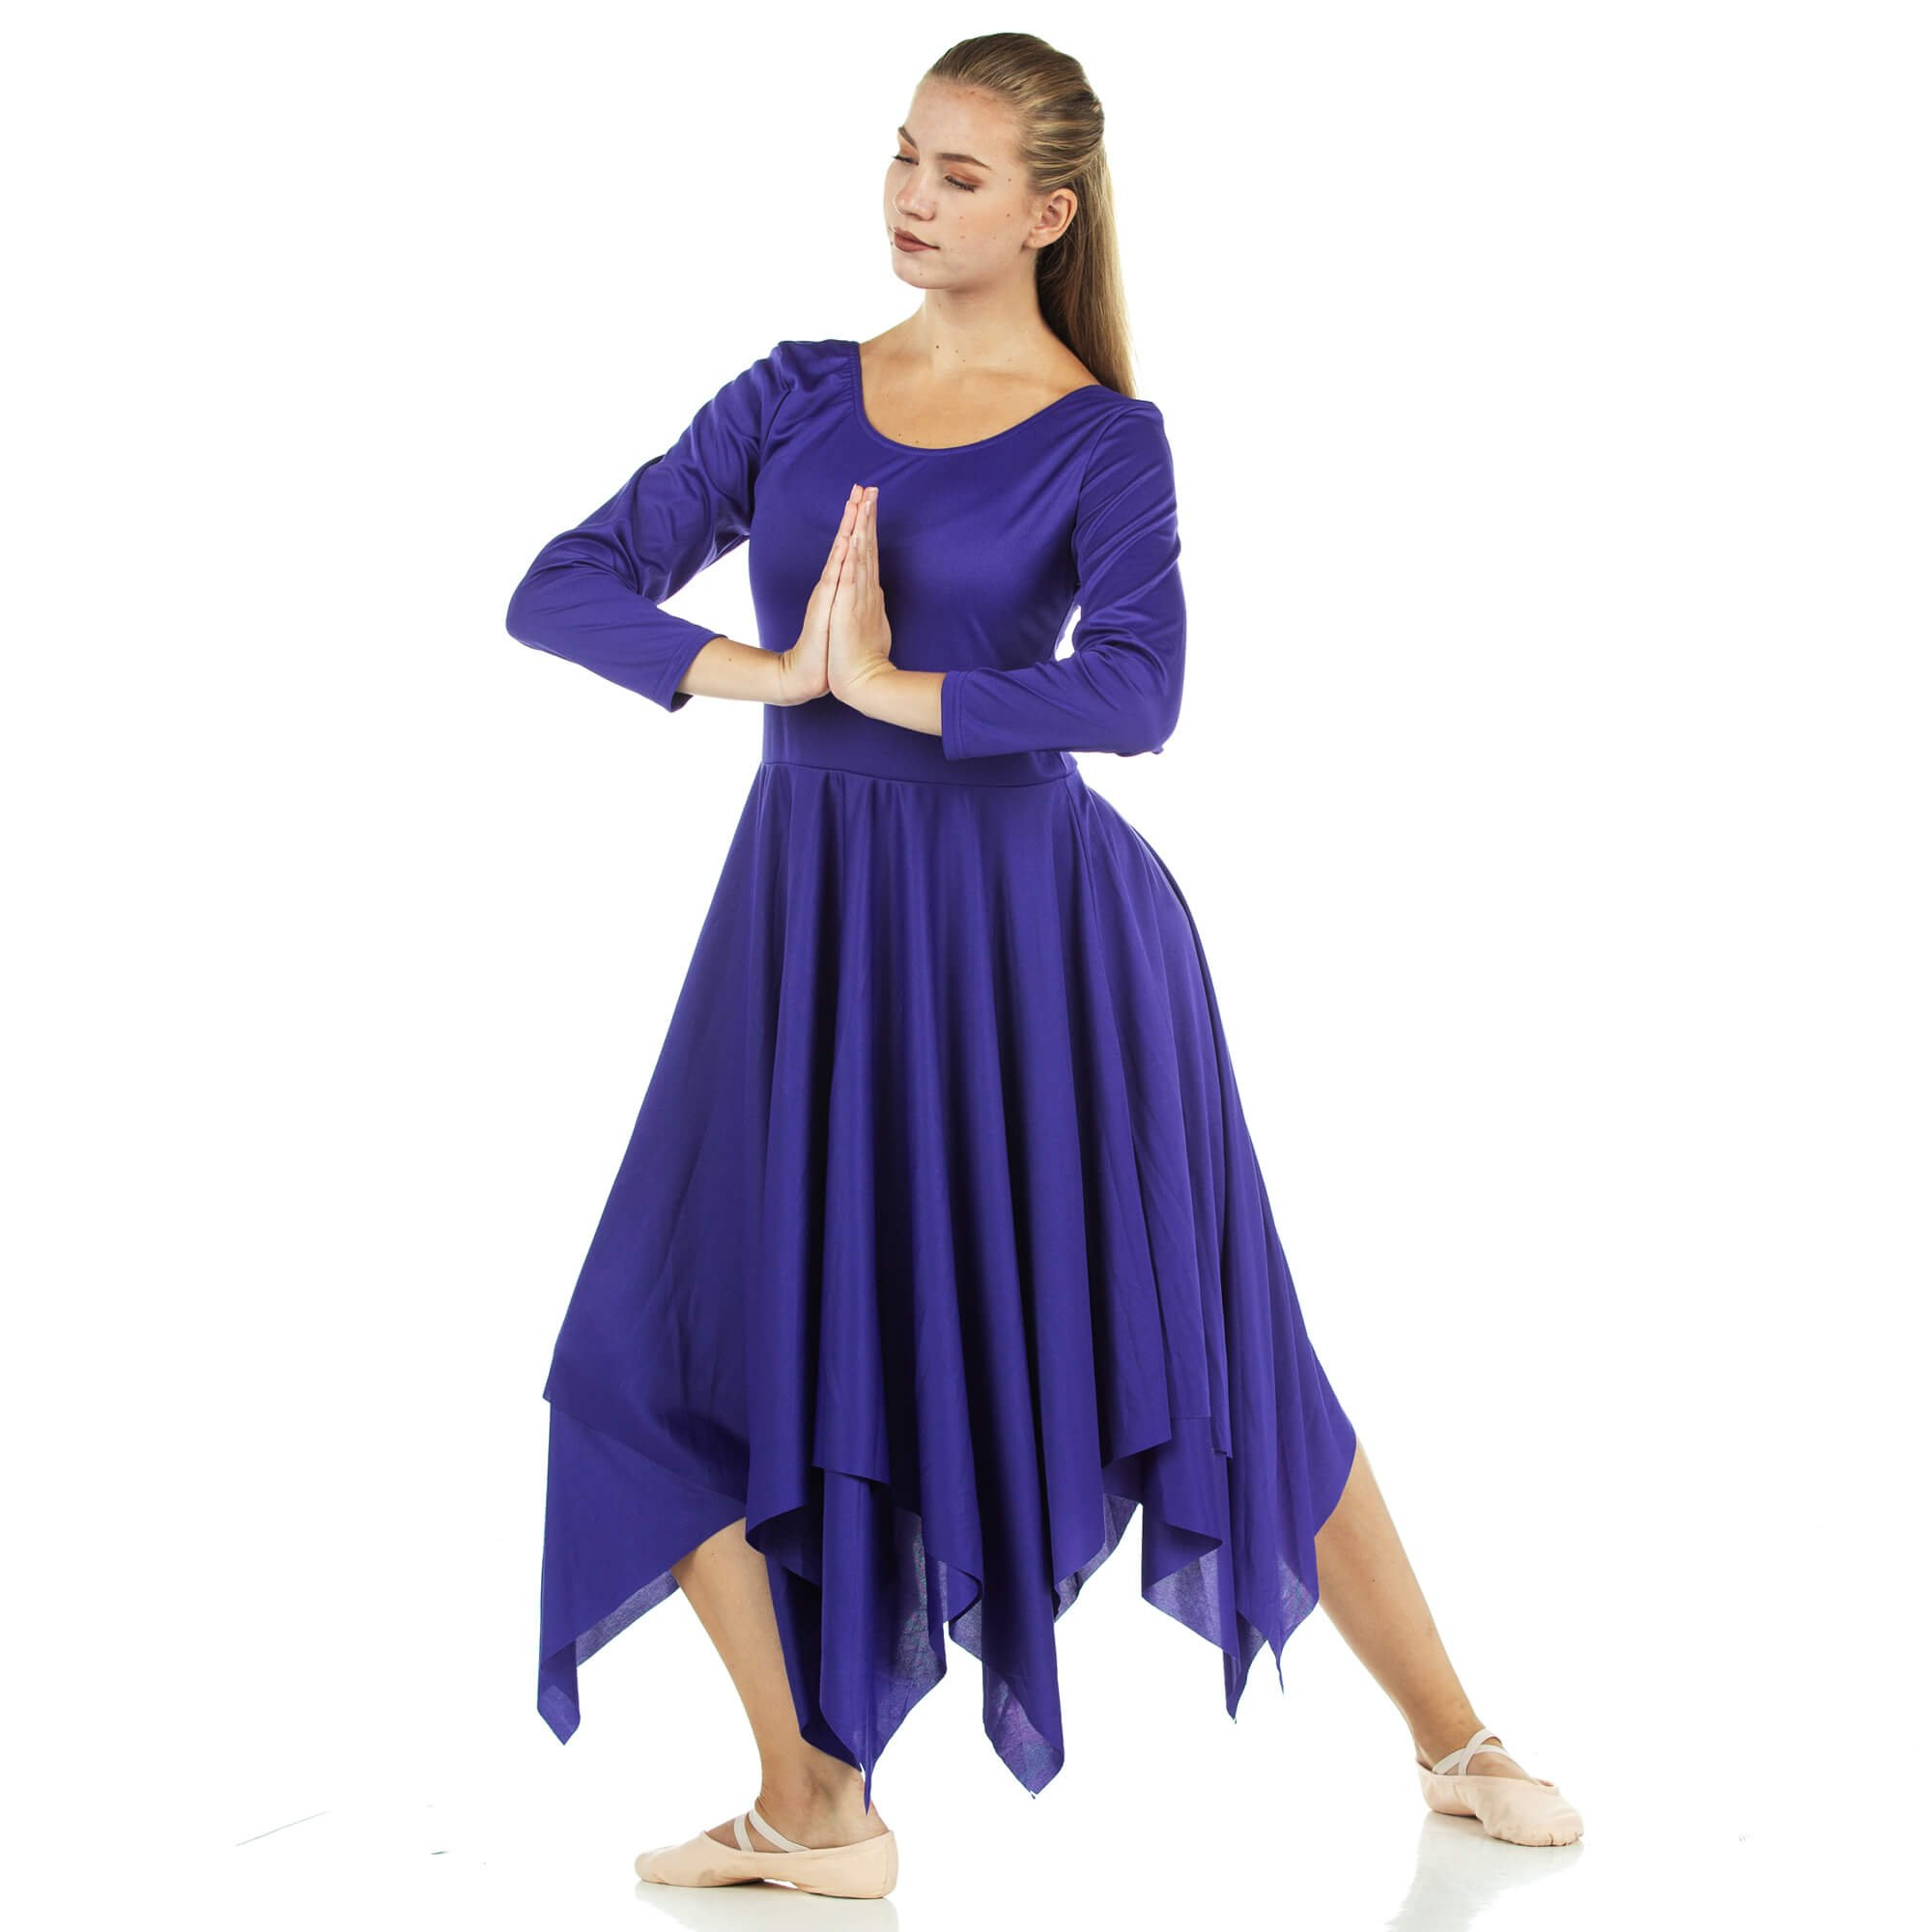 Danzcue Celebration of Spirit Long Sleeve Praise Dance Dress